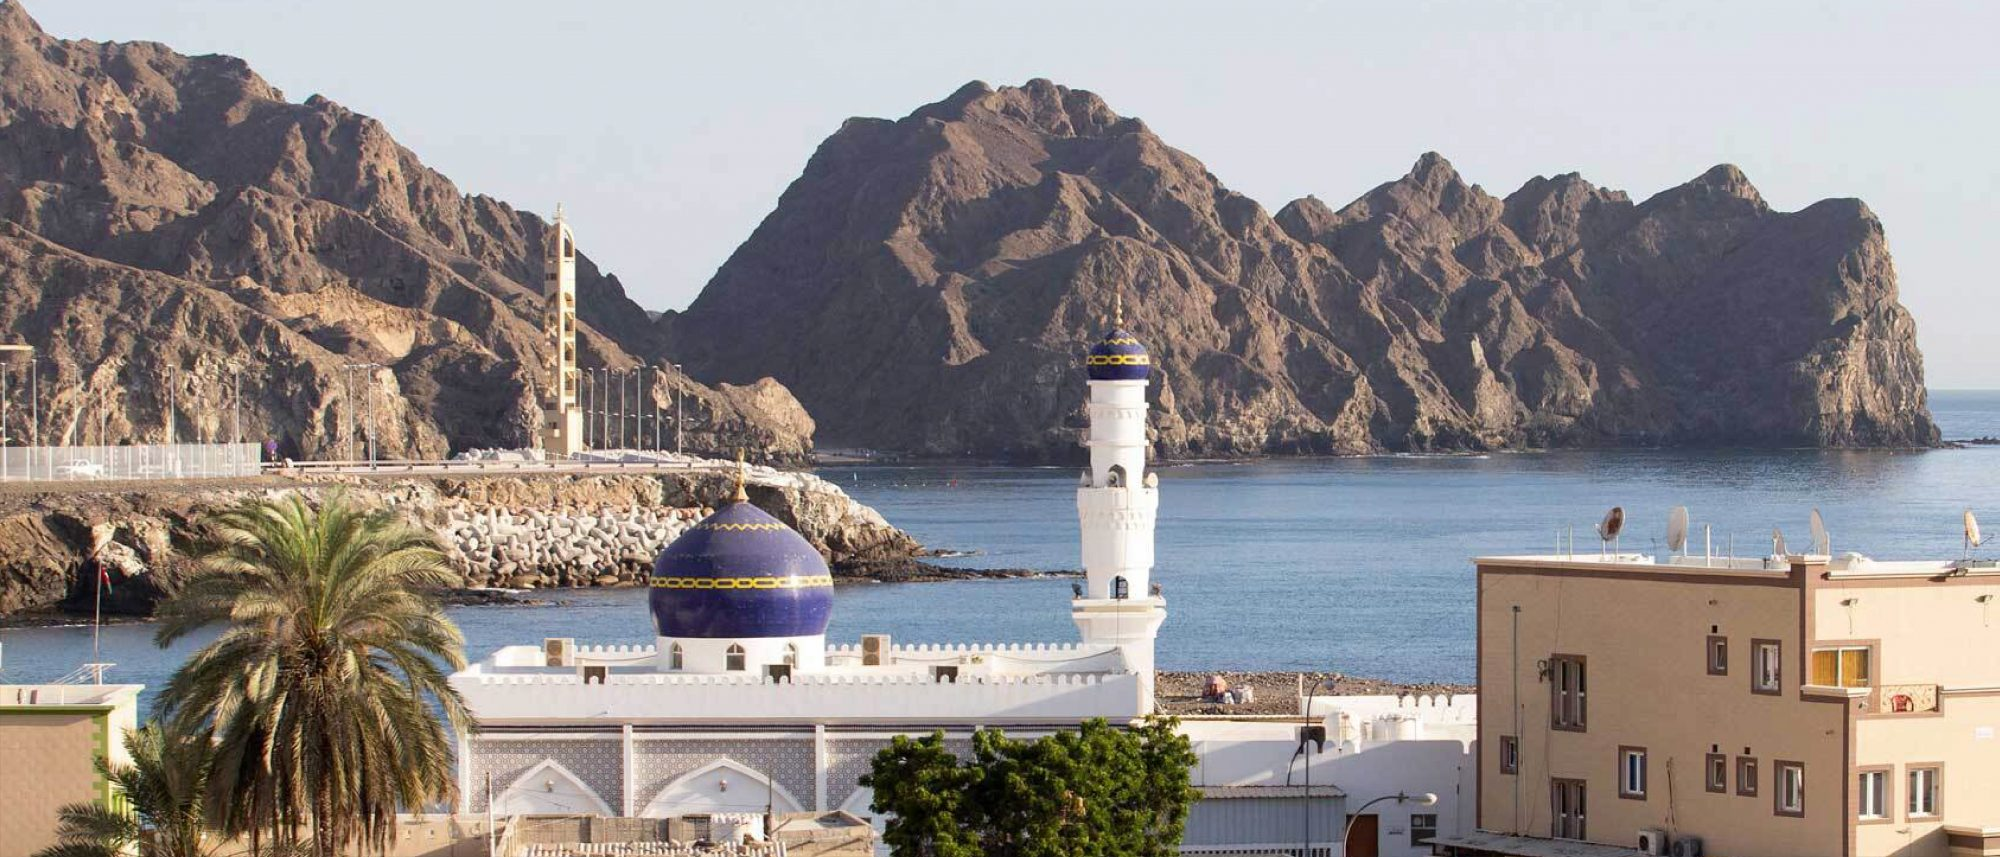 A partial view of the area of Haramil in the Omani capital Muscat.